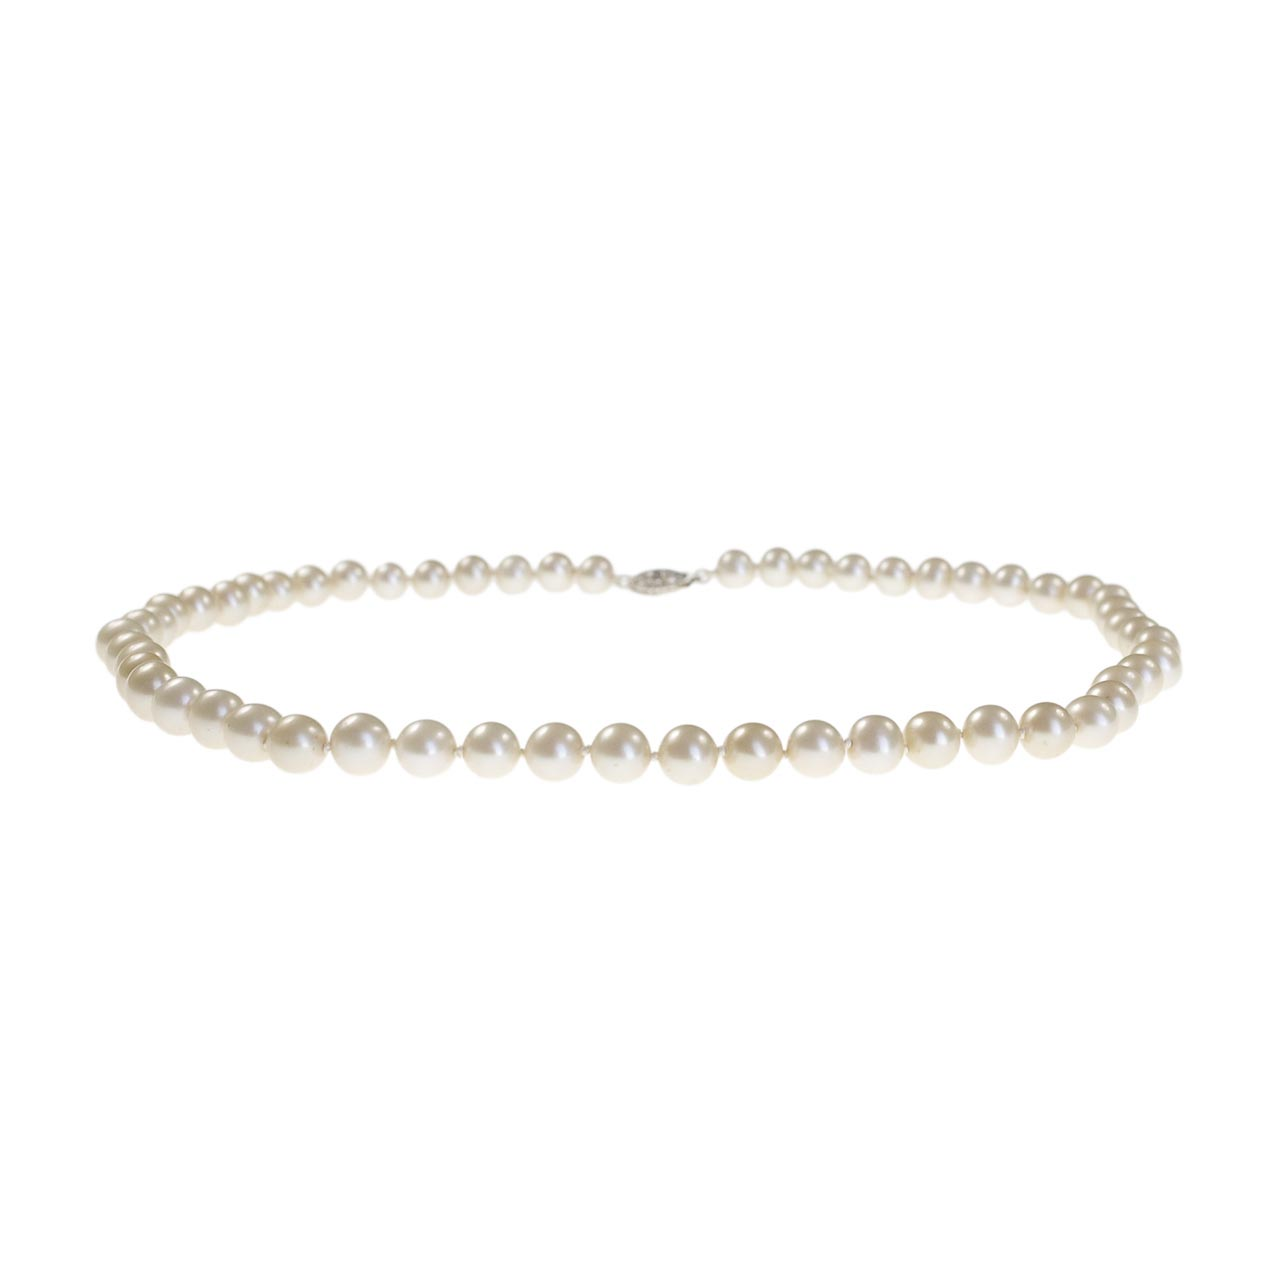 Saltwater pearl necklace 1